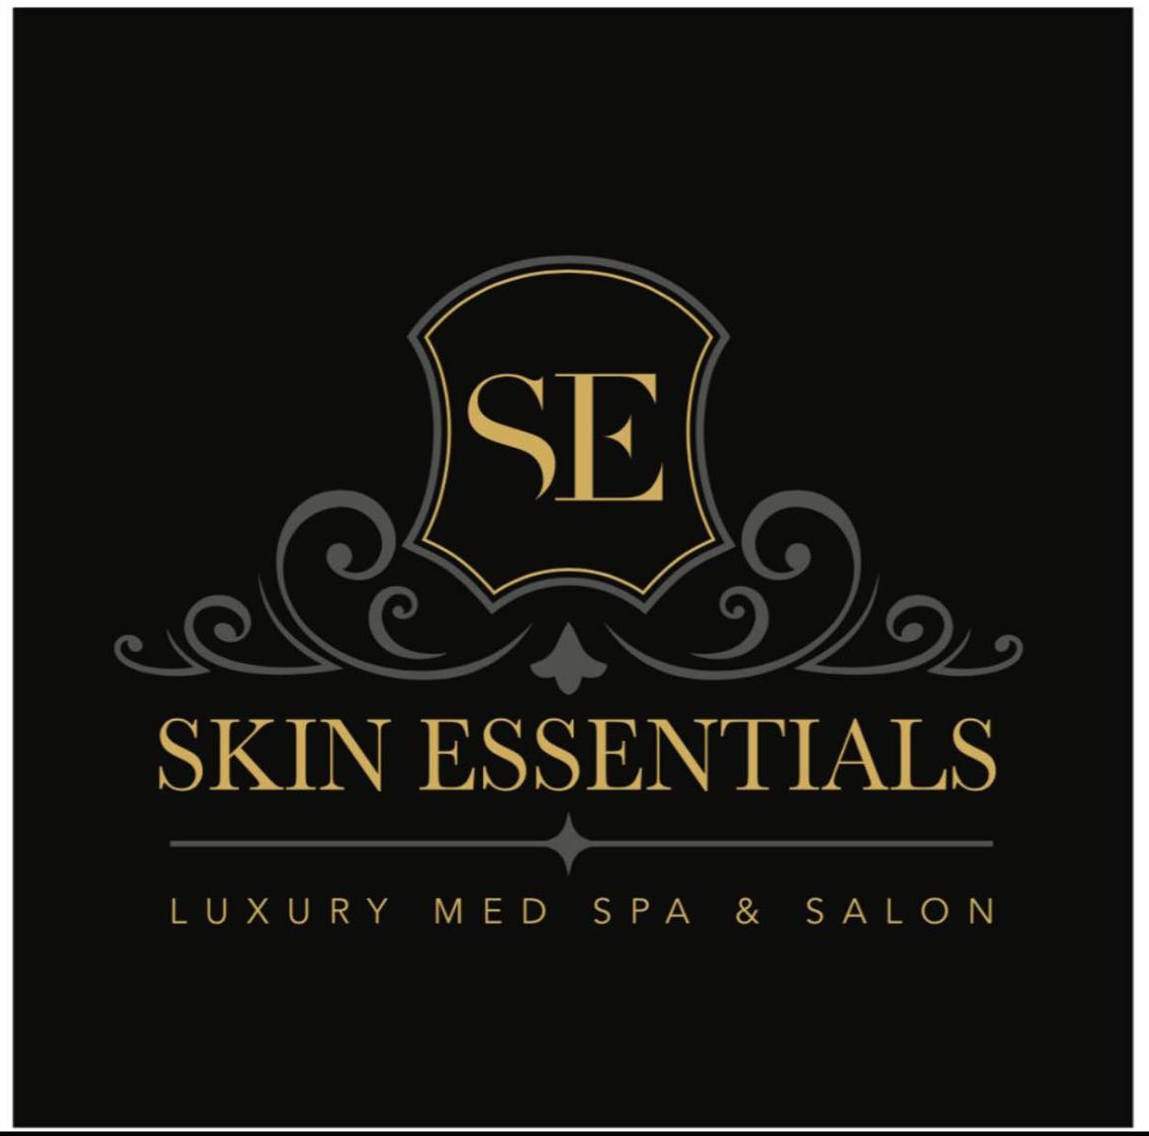 Skin Essentials Luxury Med Spa & Salon